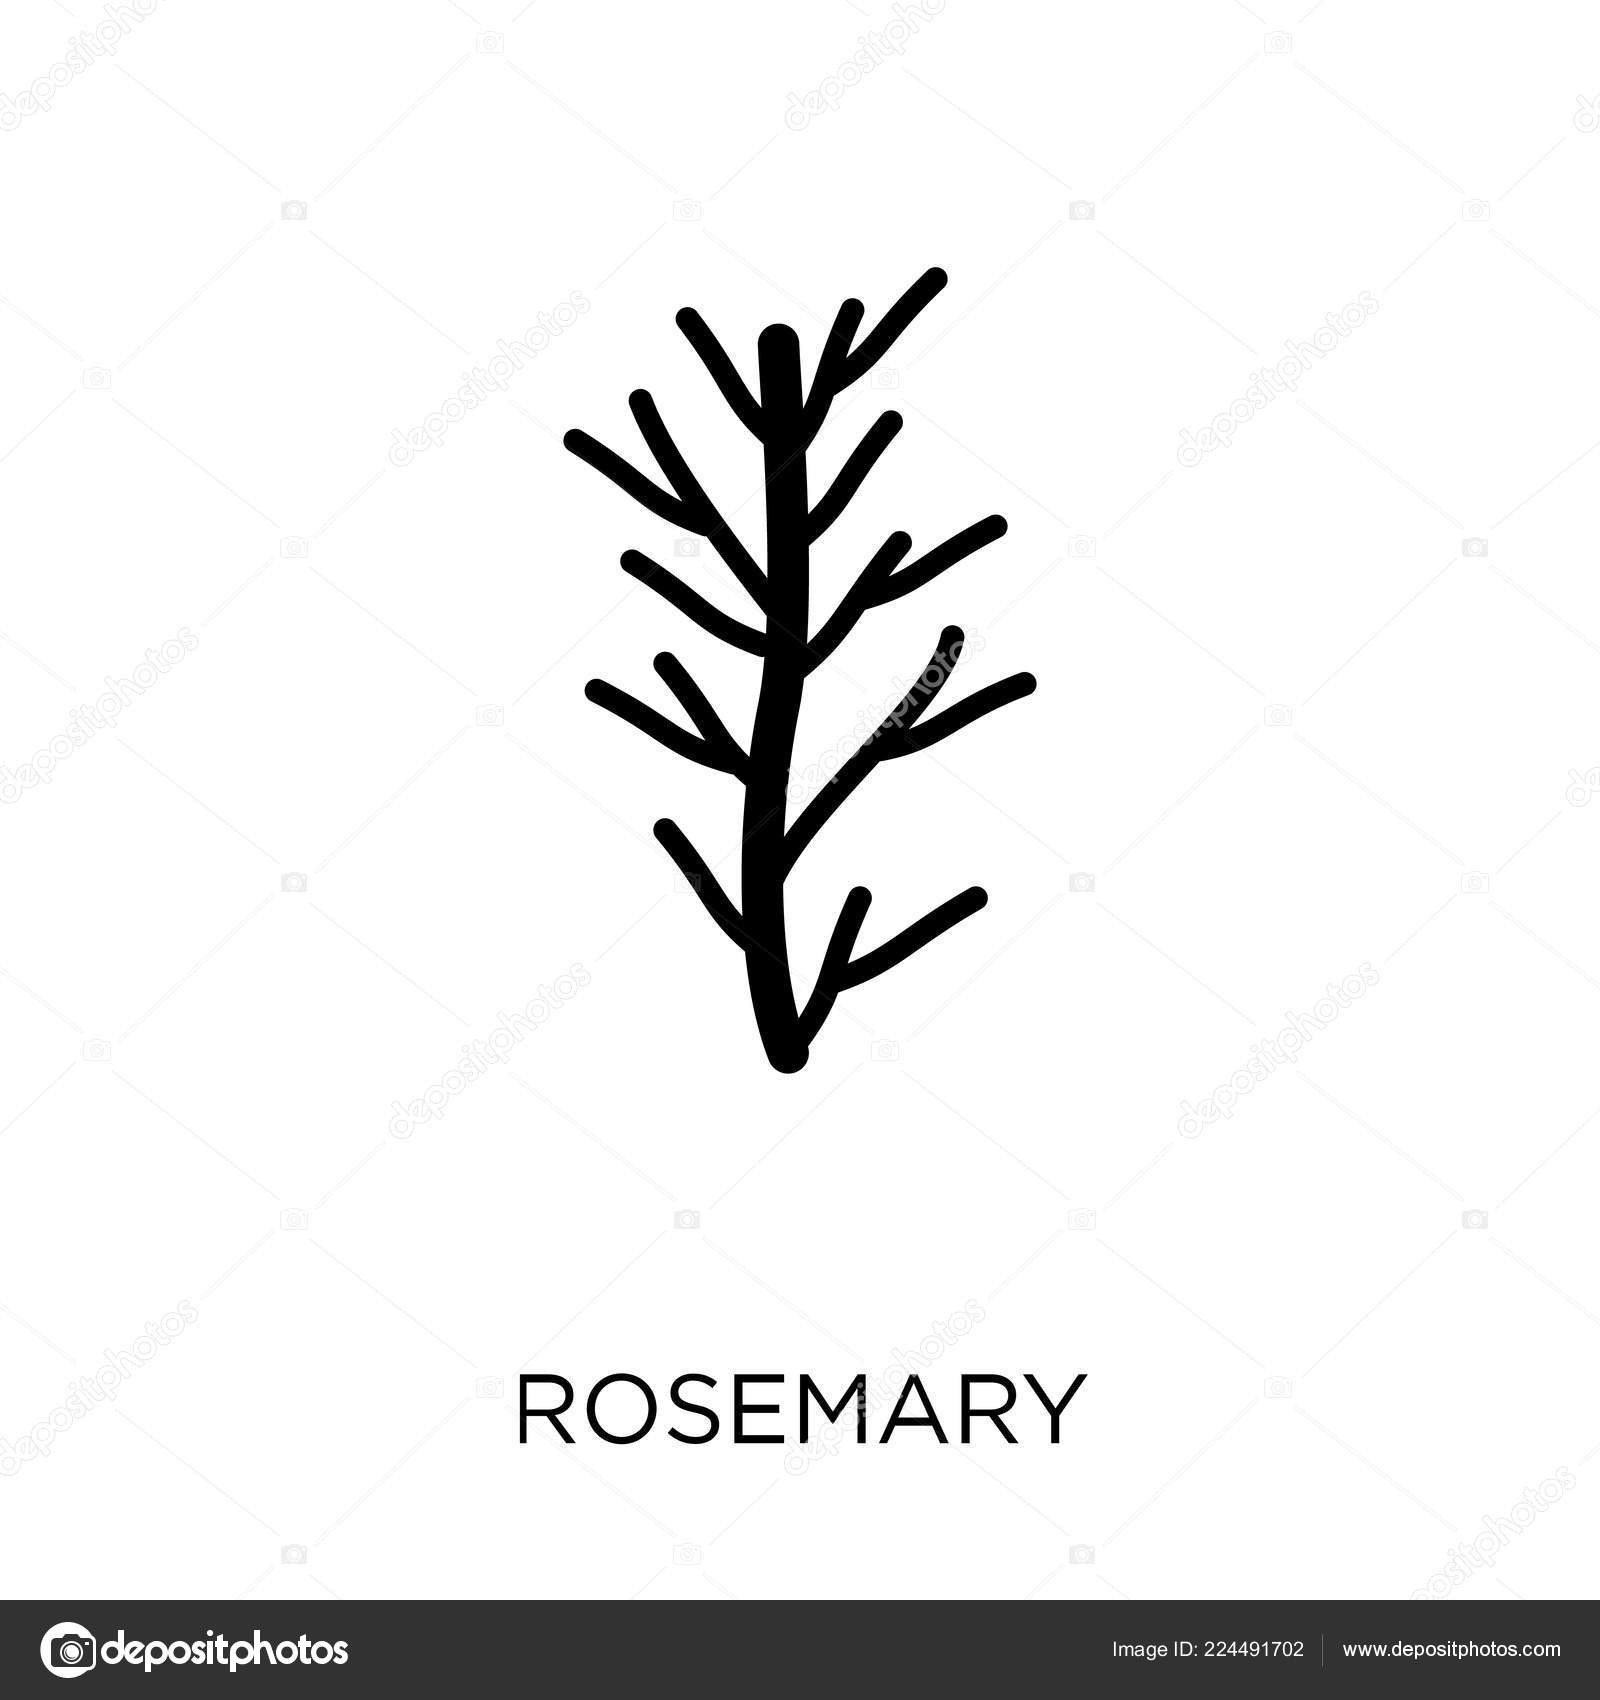 Rosemary Icon Rosemary Symbol Design Nature Collection Simple